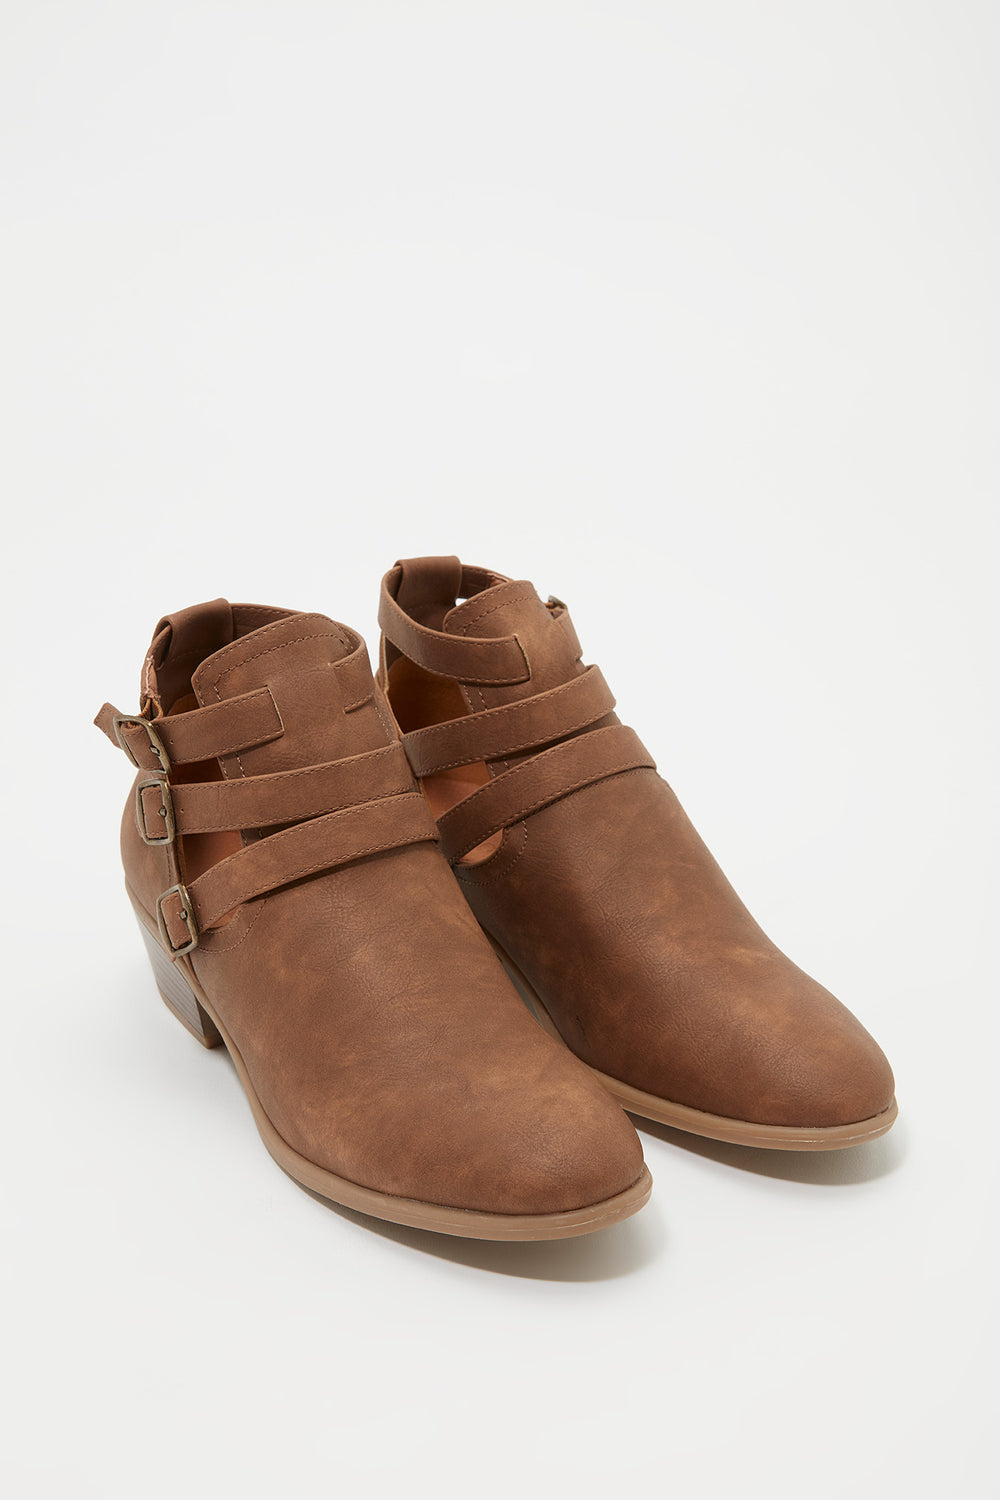 3 Buckle Strap Chelsea Boot Camel